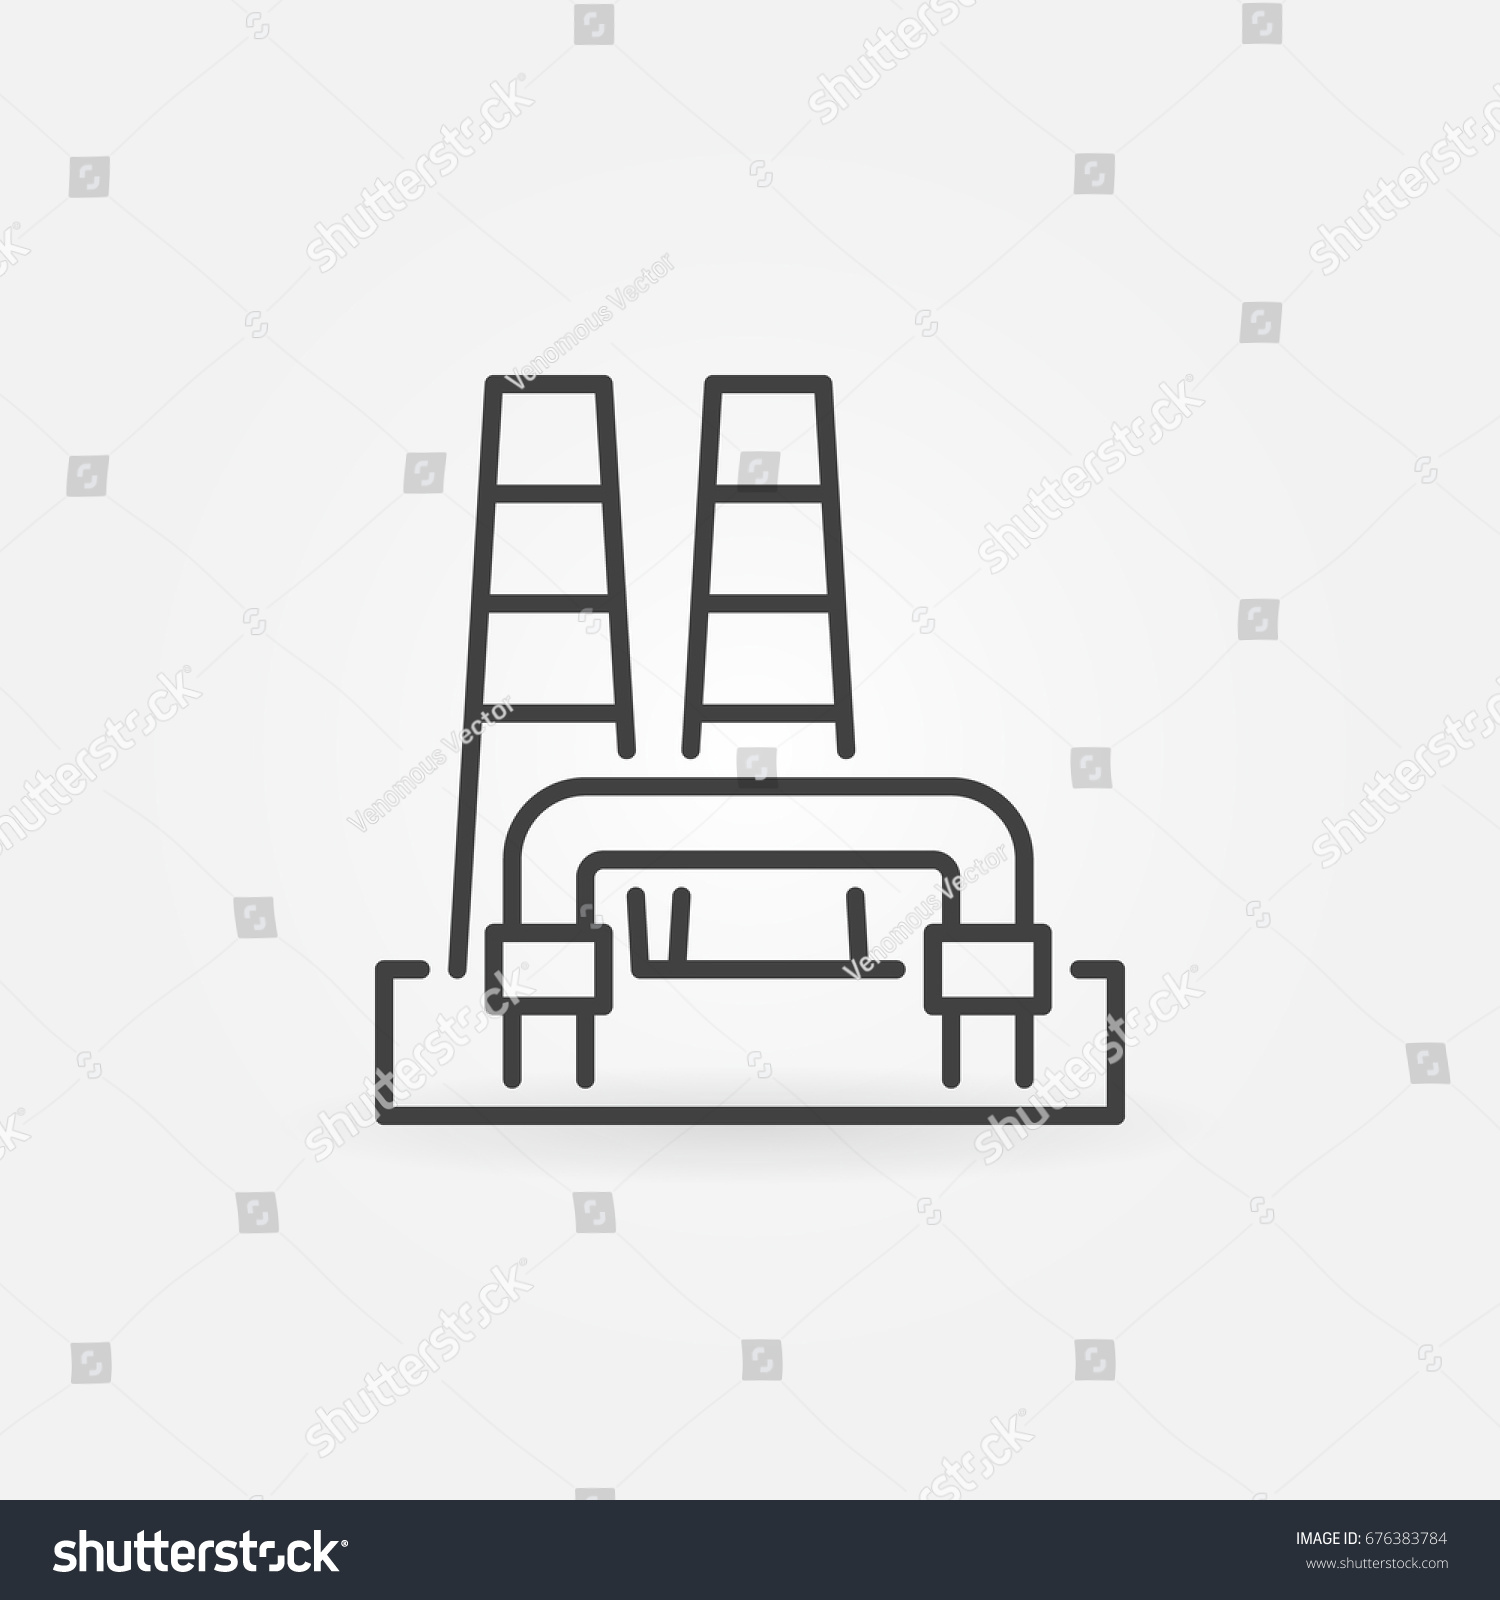 Outline Geothermal Power Plant Icon Vector Stock Royalty Diagram Renewable Energy Concept Sign